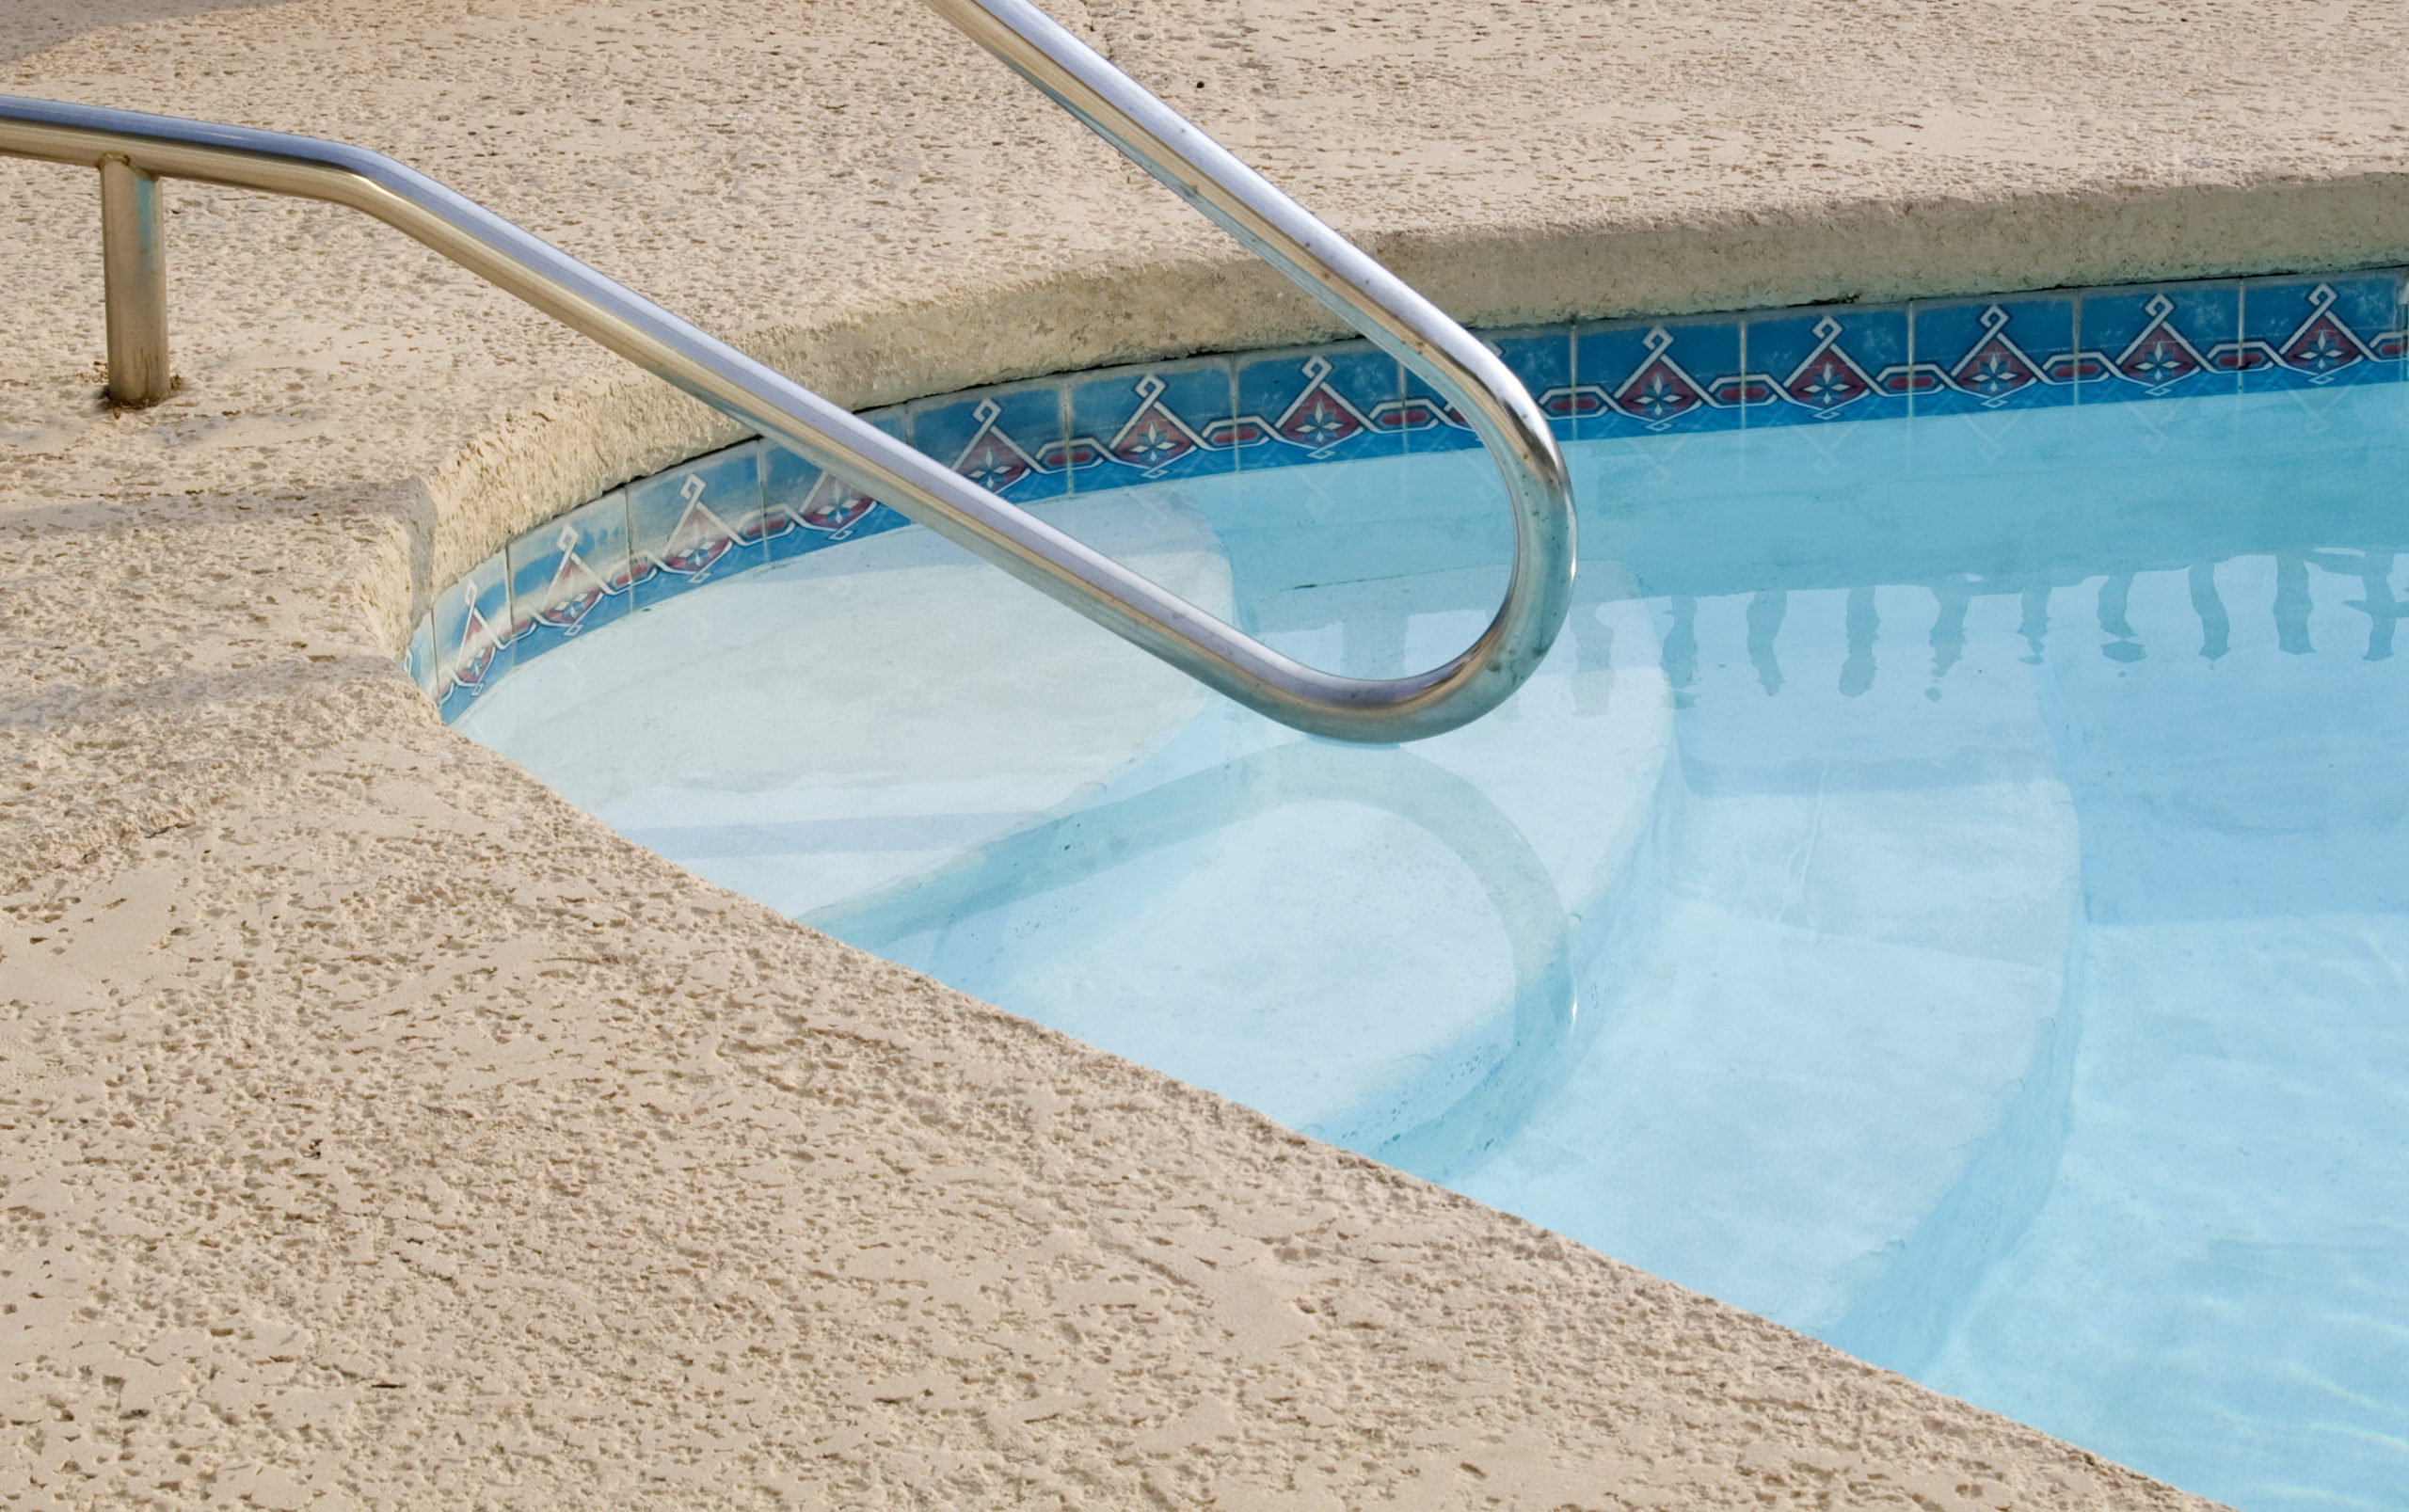 This is an image of a pool with a pool ladder and concrete deck.